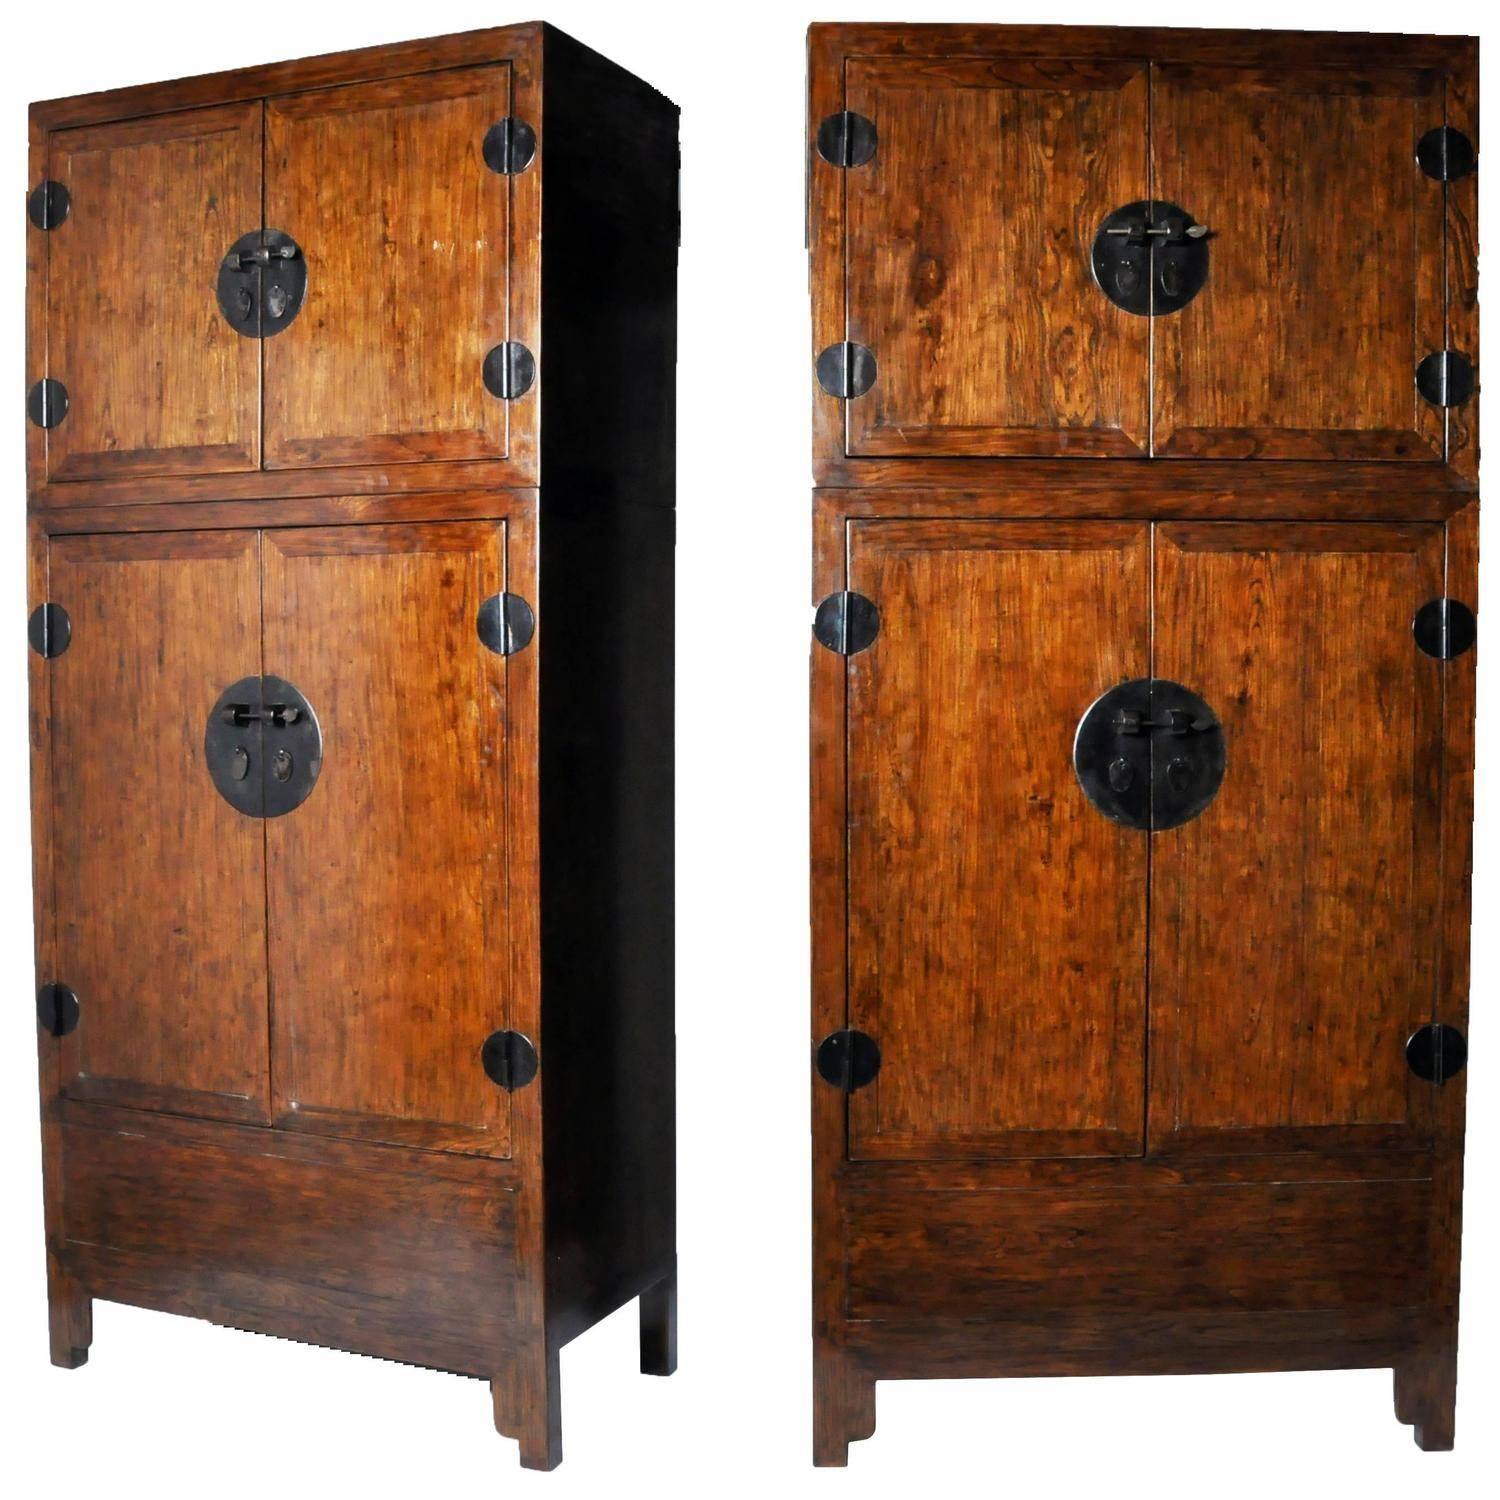 Pair Of Chinese Compound Wardrobes For Sale At 1Stdibs inside Chinese Wardrobes (Image 9 of 15)